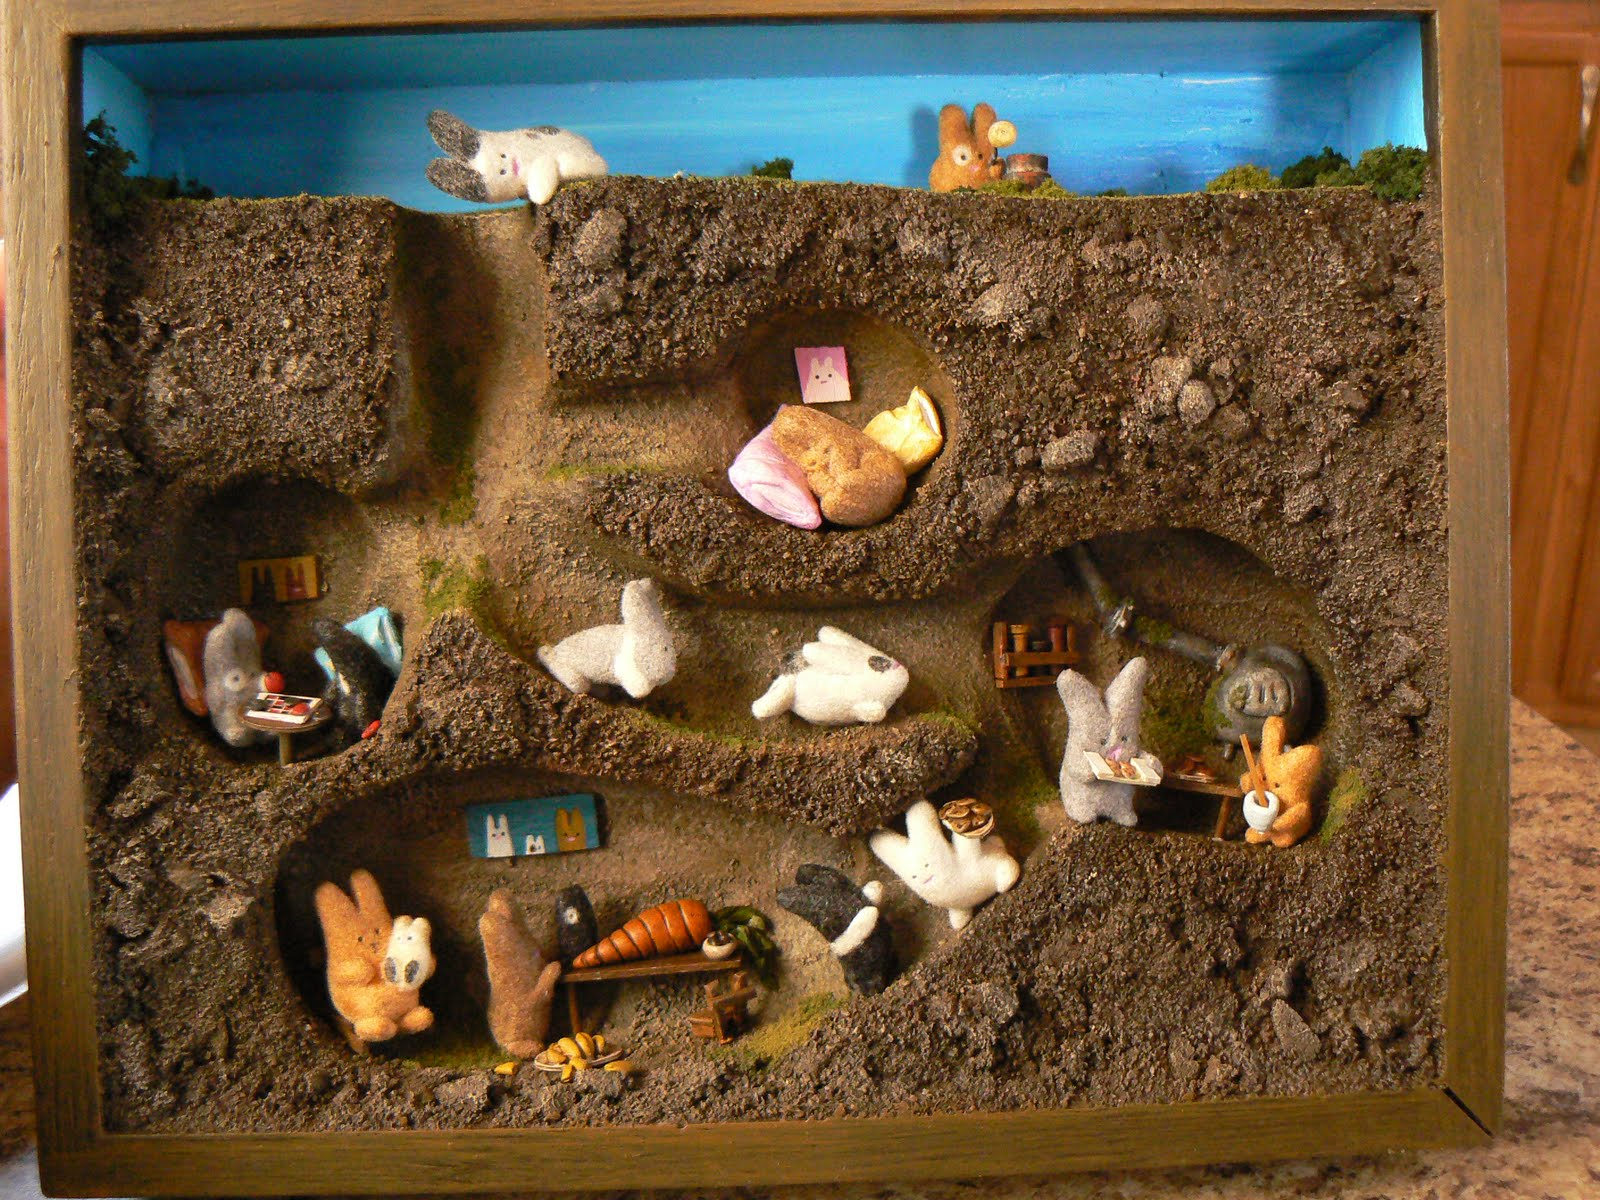 The bare bear lair hoppy bunny thanksgiving dinner diorama for In and out pictures